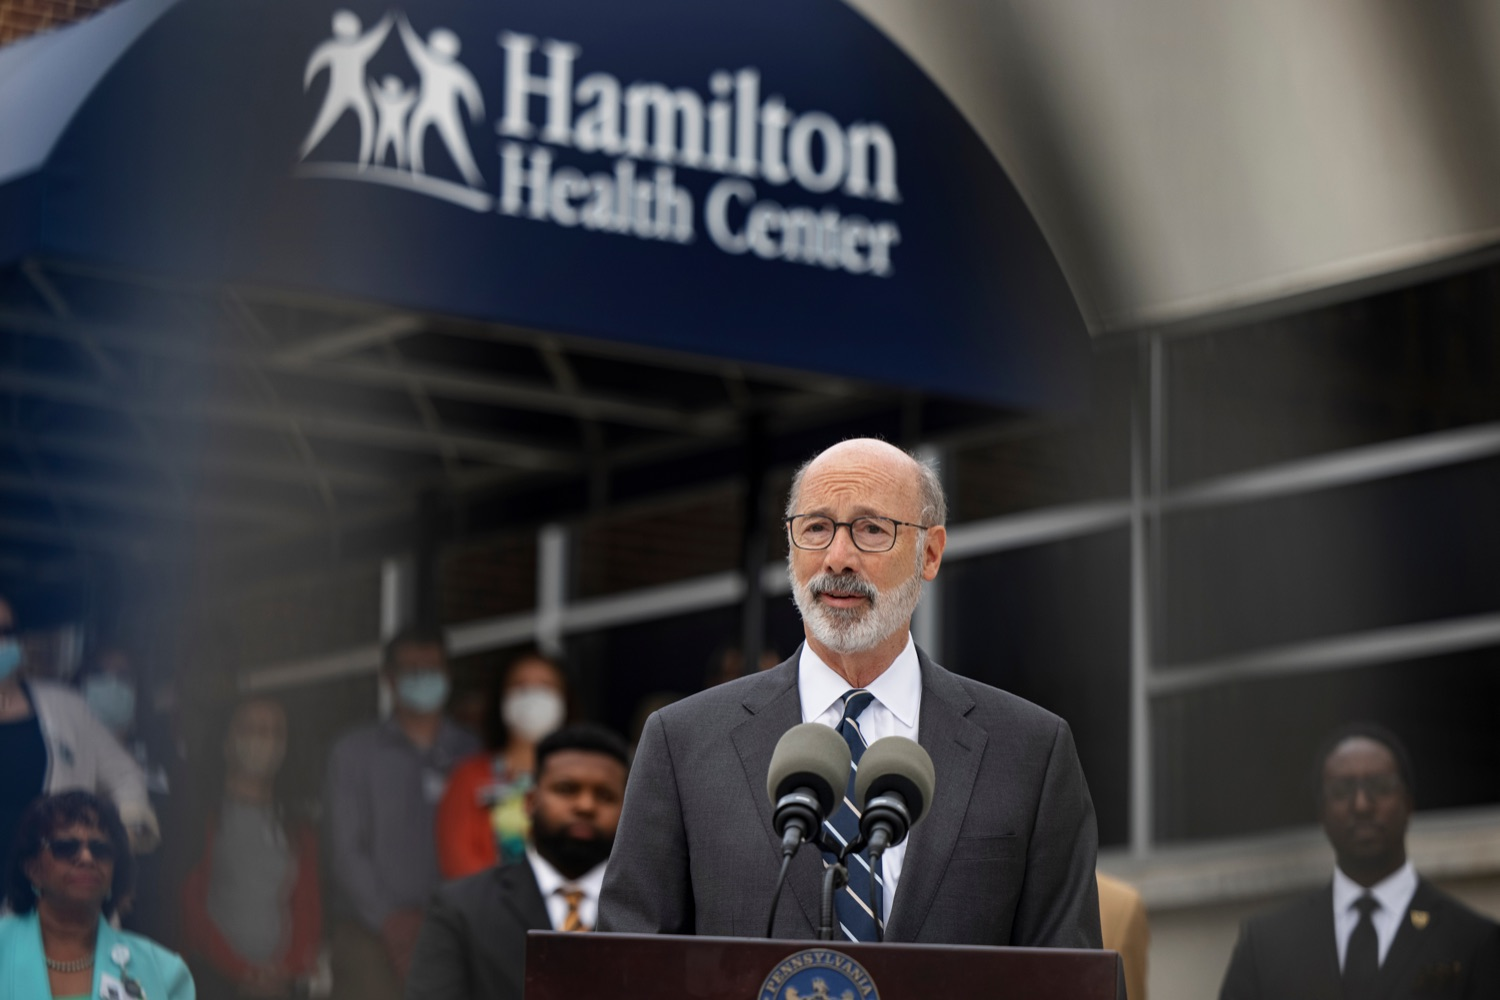 """<a href=""""https://filesource.wostreaming.net/commonwealthofpa/photo/20119_GOV_Vaccines_NK_013.jpg"""" target=""""_blank"""">⇣Download Photo<br></a>PA Governor Tom Wolf speaks during a press conference, which encouraged eligible Pennsylvanians who are not yet vaccinated to take advantage of their upcoming community COVID-19 vaccine clinic in partnership with the Zeta Theta Lambda Chapter of Alpha Phi Alpha fraternity, outside Hamilton Health Center in Harrisburg on Wednesday, October 6, 2021. The clinic will run on Saturday, October 9, COVID-19 vaccinations will be offered from 10am  2pm at Hamilton Health Center, 100 S. 17th St., Harrisburg, PA 17104."""